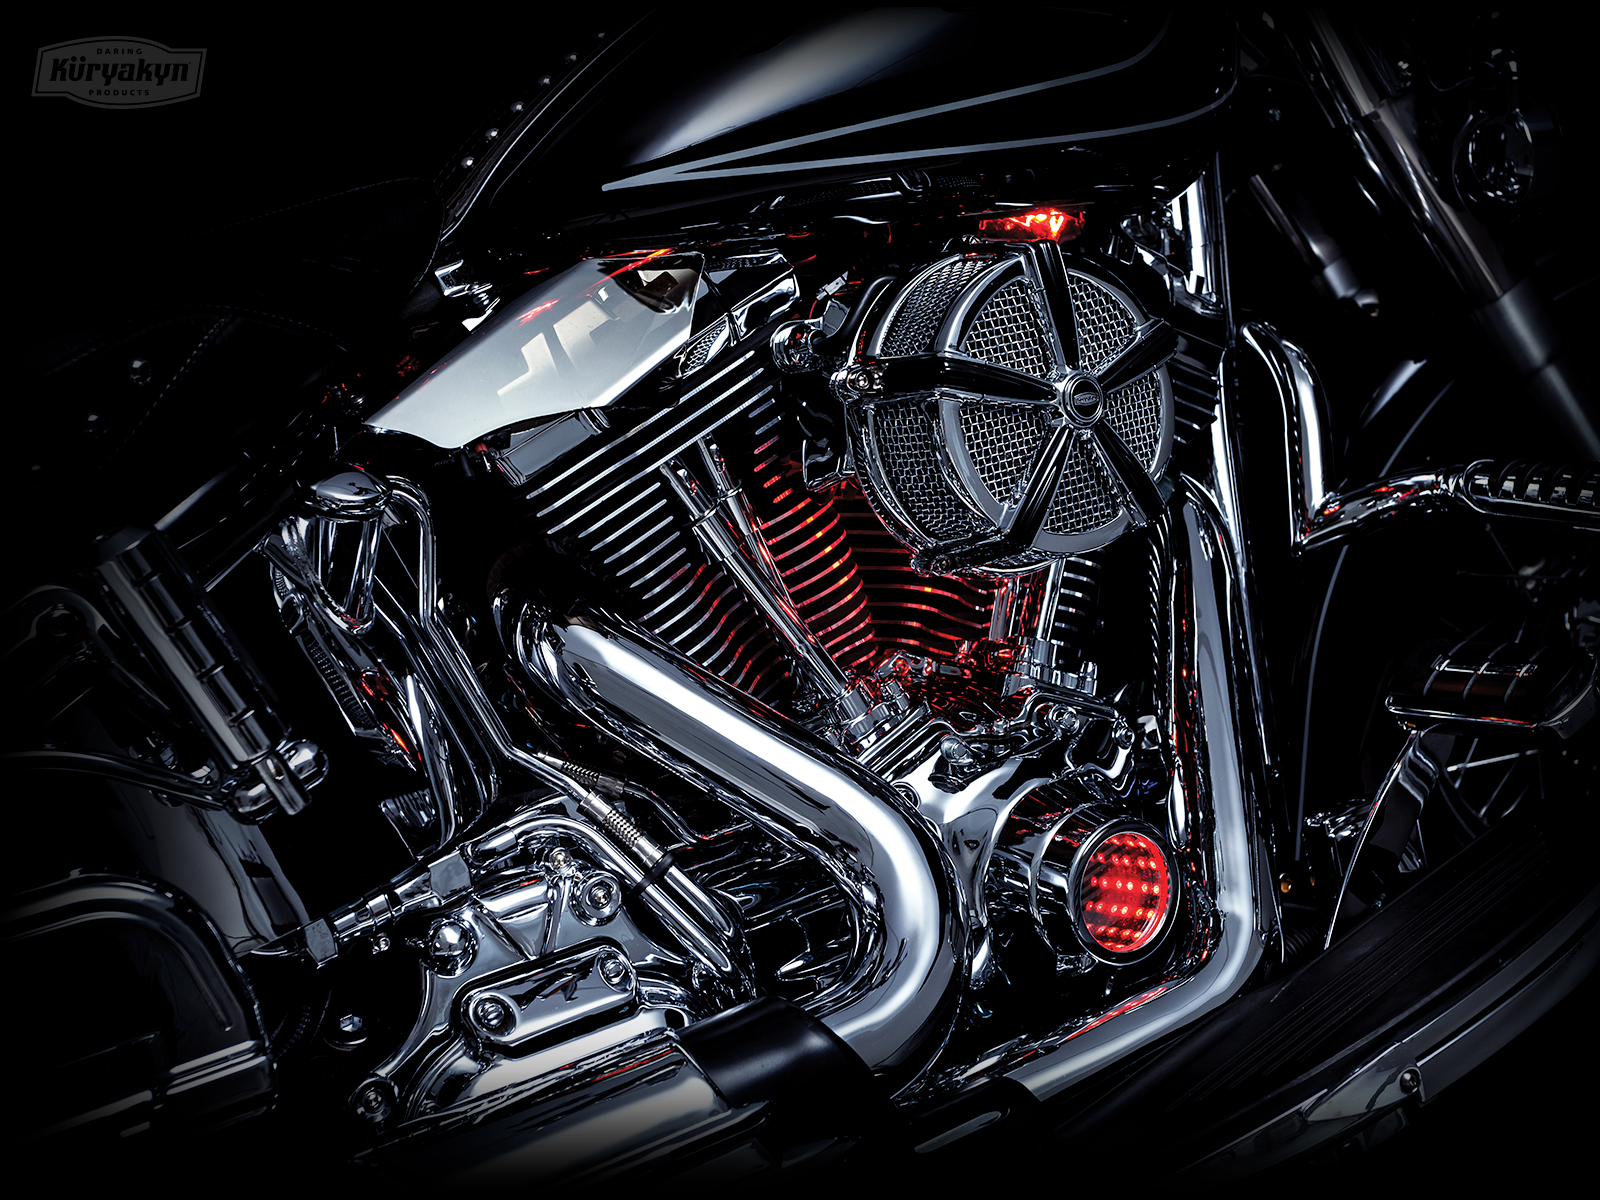 Wallpapers Motorcycle Parts And Accessories For Harley